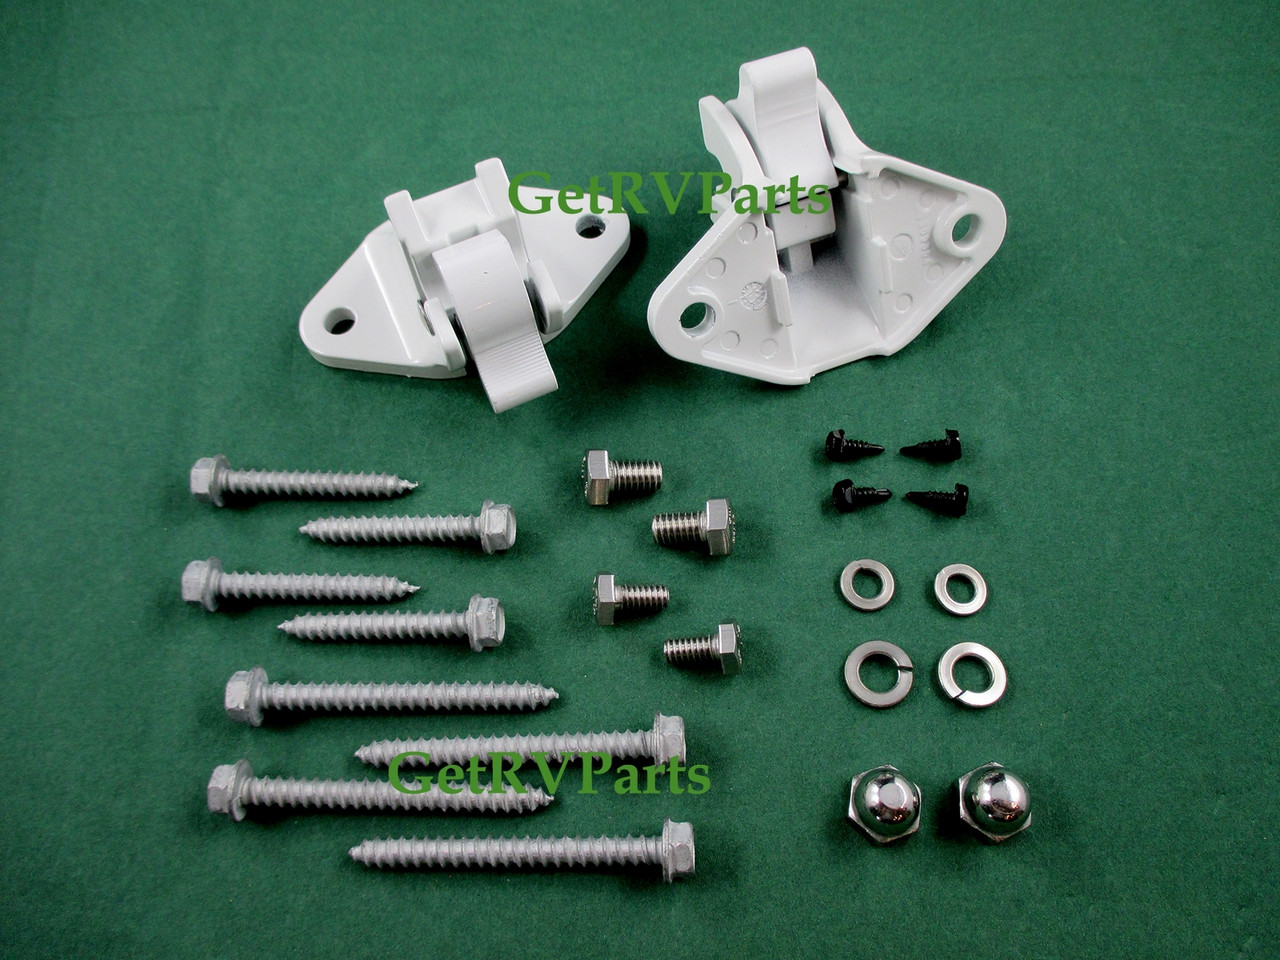 A&E 3312931003B RV Sunchaser II Awning Hardware Kit